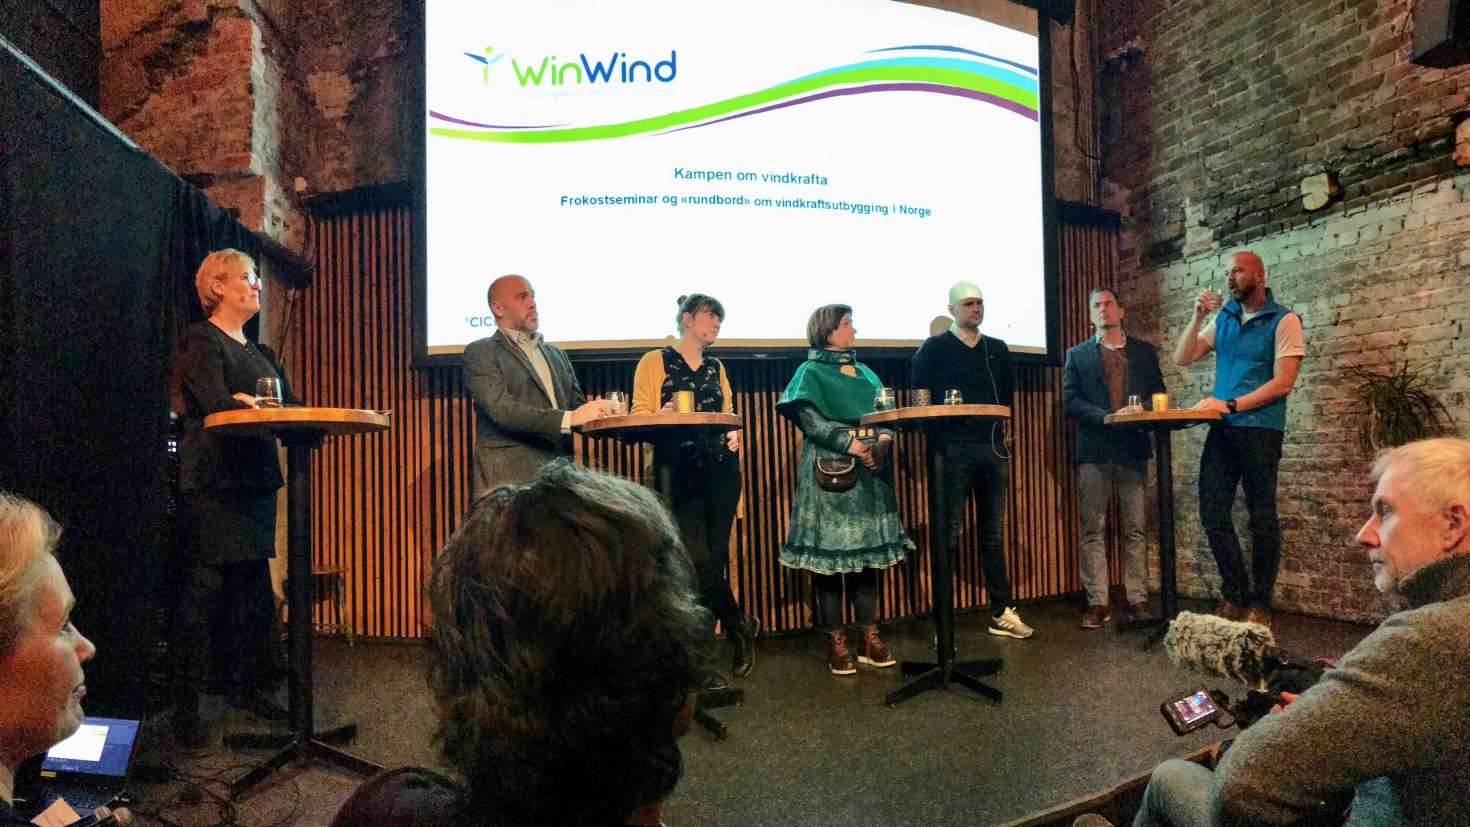 The debate organised by cicero and nve clearly showed that there is large disagreement on whether more wind power capacity should be developed in norway. From left to right: kristin halvorsen (CICERO), Thomas Bjørdal (LNVK), Silje Ask Lundberg (Friends of the earth norway); Aili Keskitalo (sami parliament of norway), Bengt Eidem (TrønderEnergi), Marius Holm (ZERO) and Dag Terje Solvang (The norwegian tourism organisation). Photo by Iselin Rønningsbakk / CICERO.